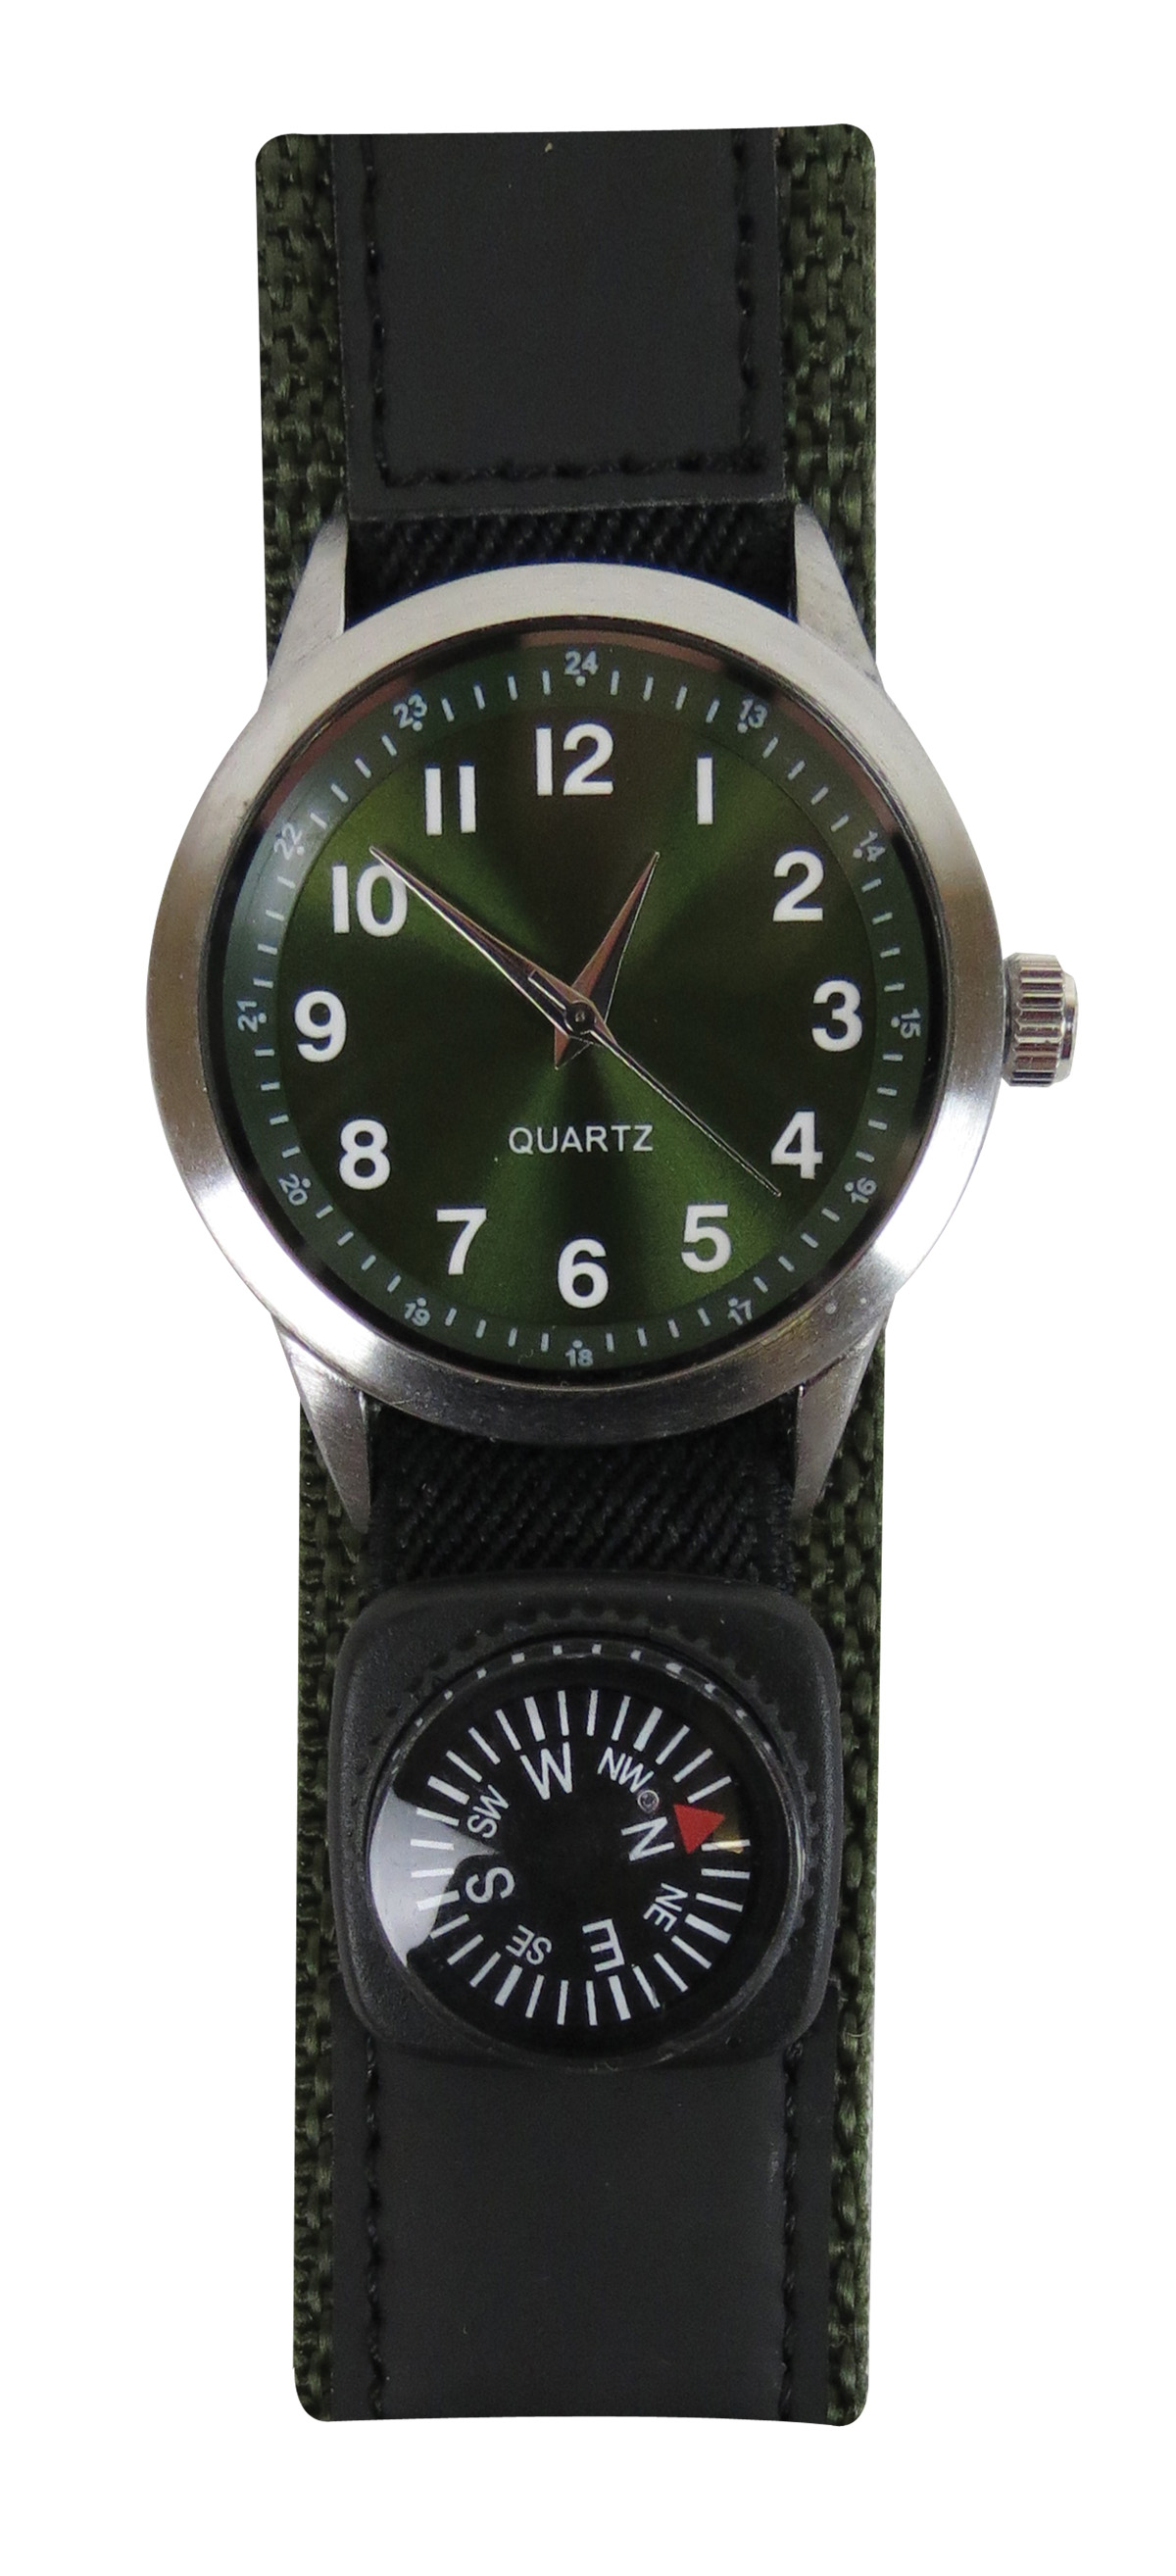 Military Field Watch With Compass